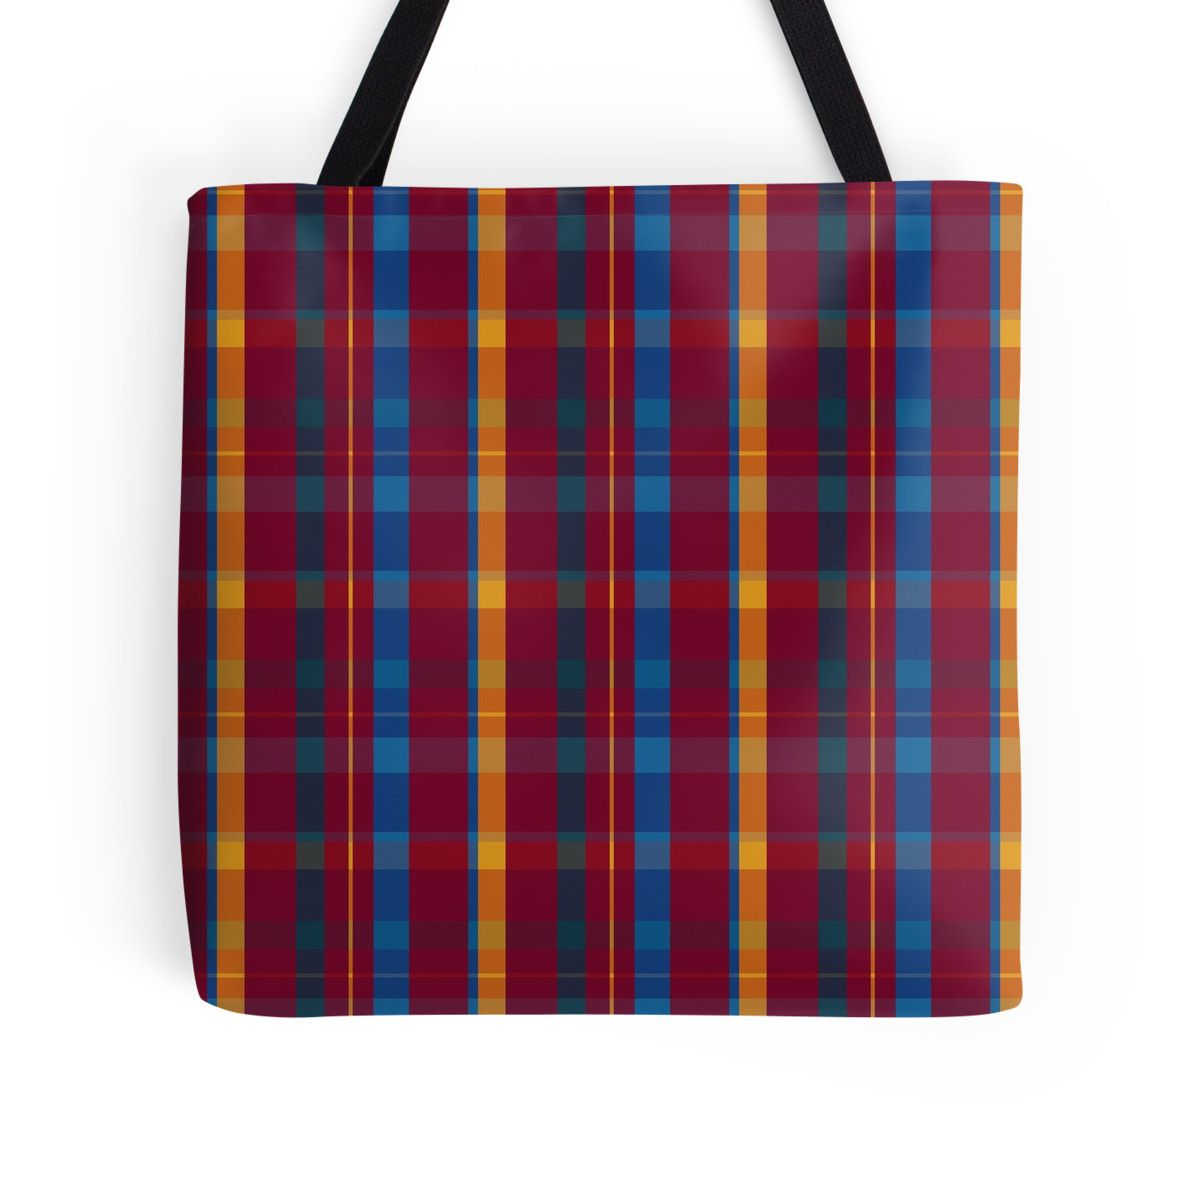 Red Plaid Tote Bag by scardesign11 #totebag #buytotebag #bag #gifts #buygifts #giftsforher #groceries #shopping #shoppingbag #buybag #buytotebag #cool #coolgifts #accessories #womenaccessories #beachtotebag #beach #beachbag #summer #summergifts #summerbag #plaidbag #plaidgifts #plaidtotebag